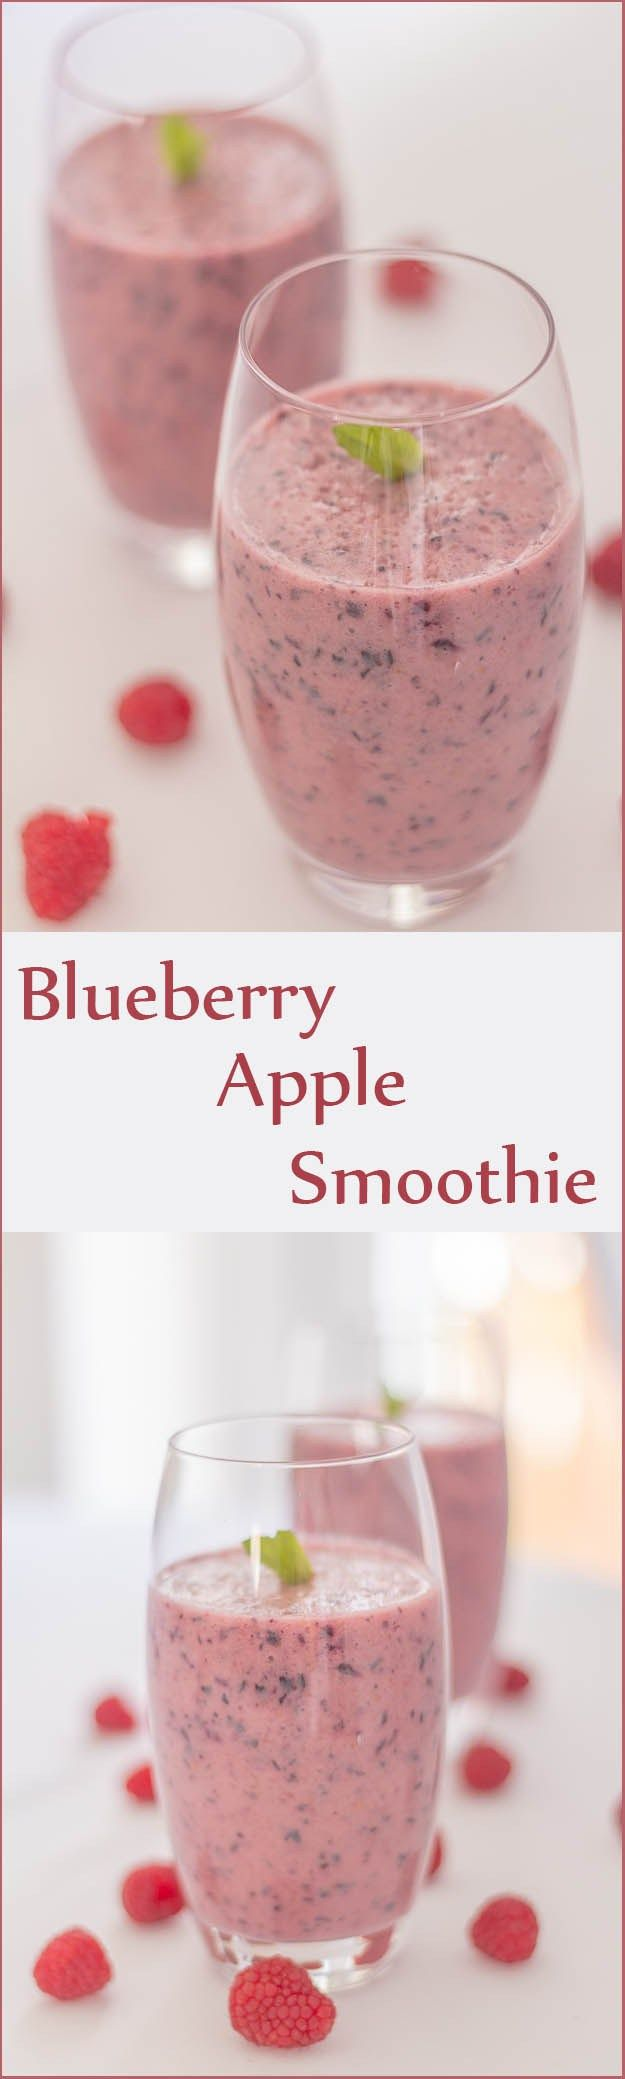 This blueberry apple smoothie is not only healthy but it tastes just great. Ideal as a refreshing wakeup call in the morning or as a pick me up during the day.